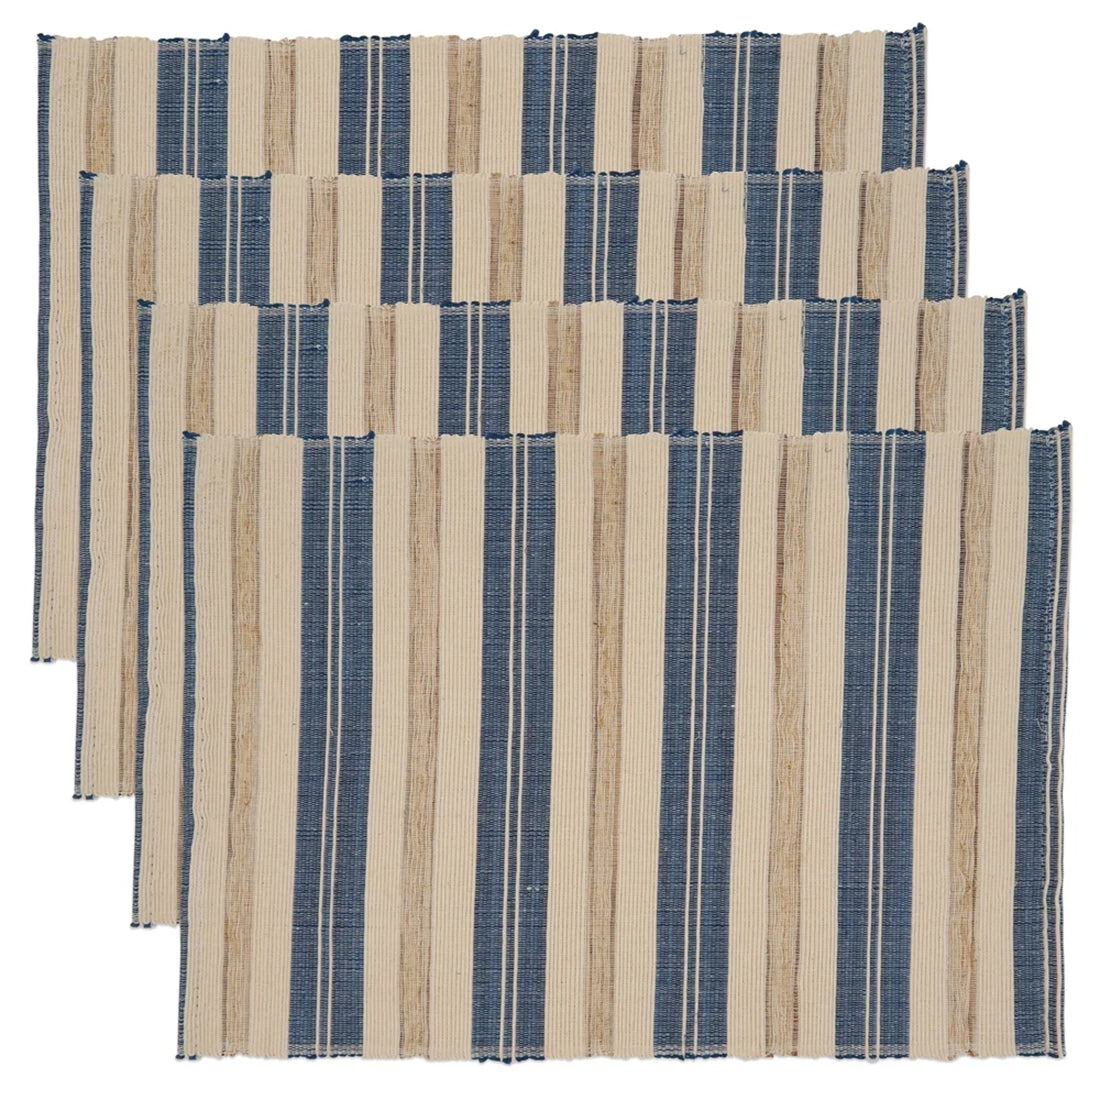 Fennco Styles Modern Water Hyacinth Woven Striped Table Runner